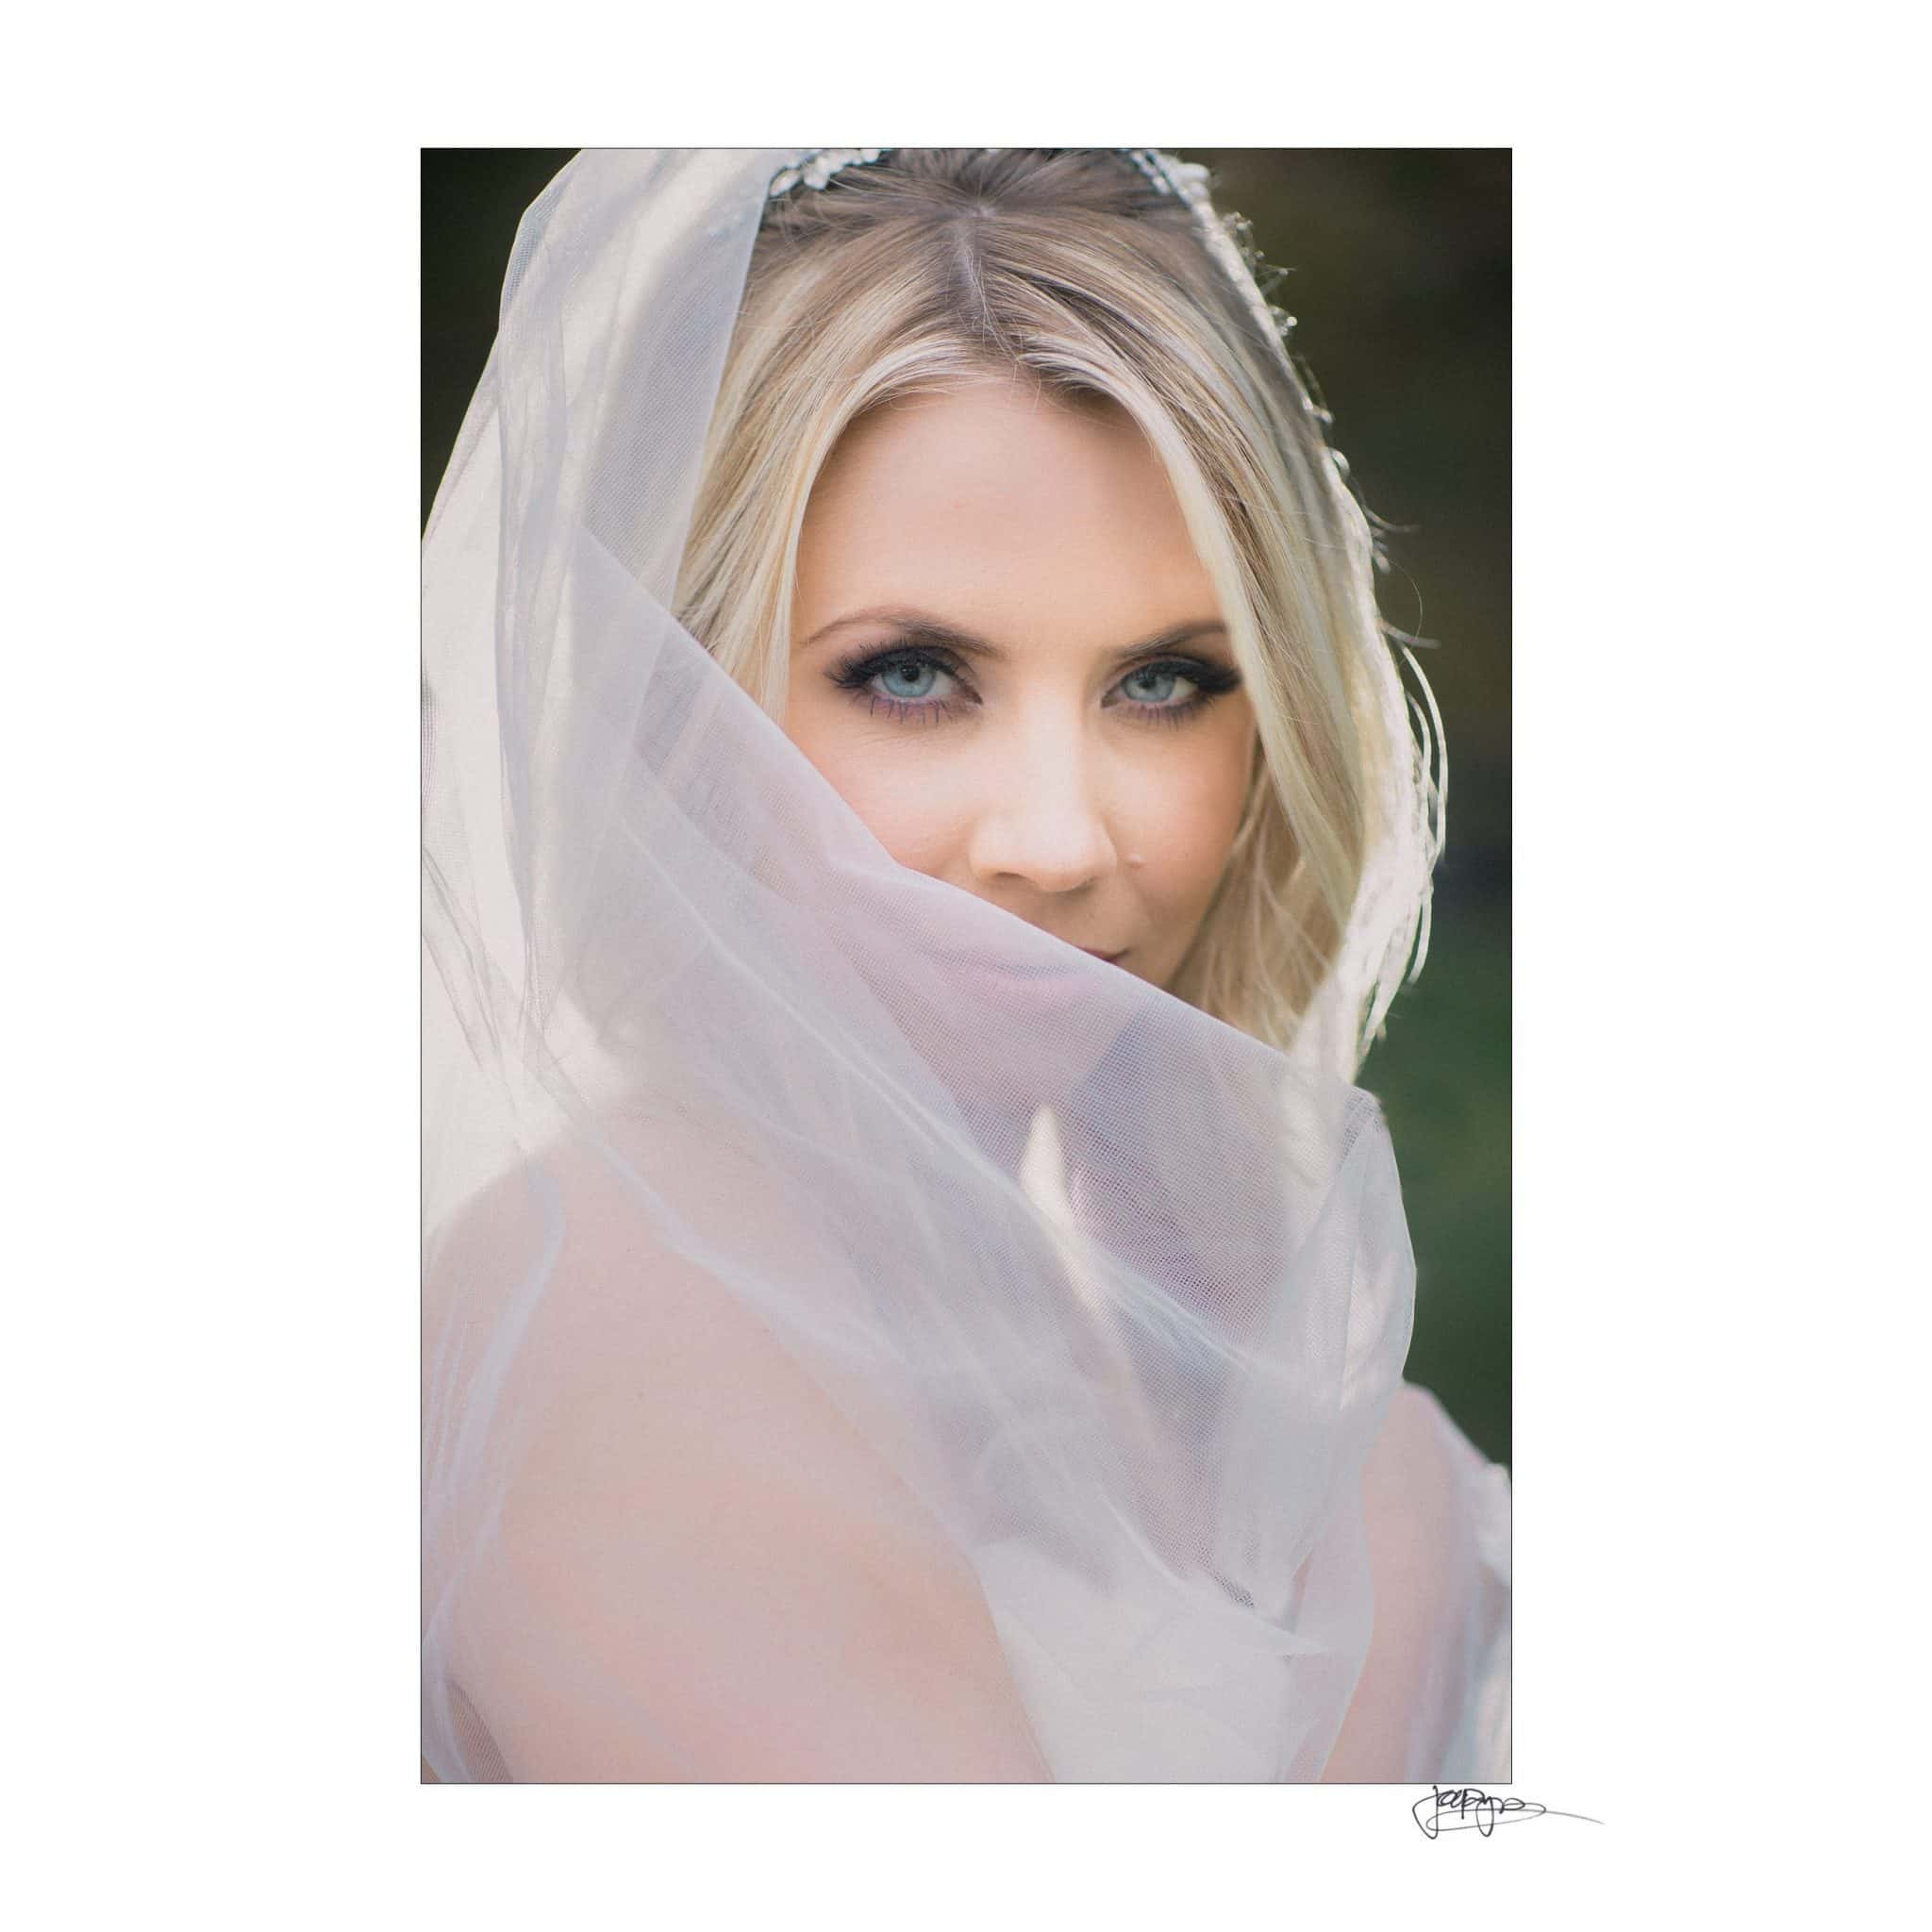 Umstead Hotel Wedding Eyes Through Veil Bridal Shot